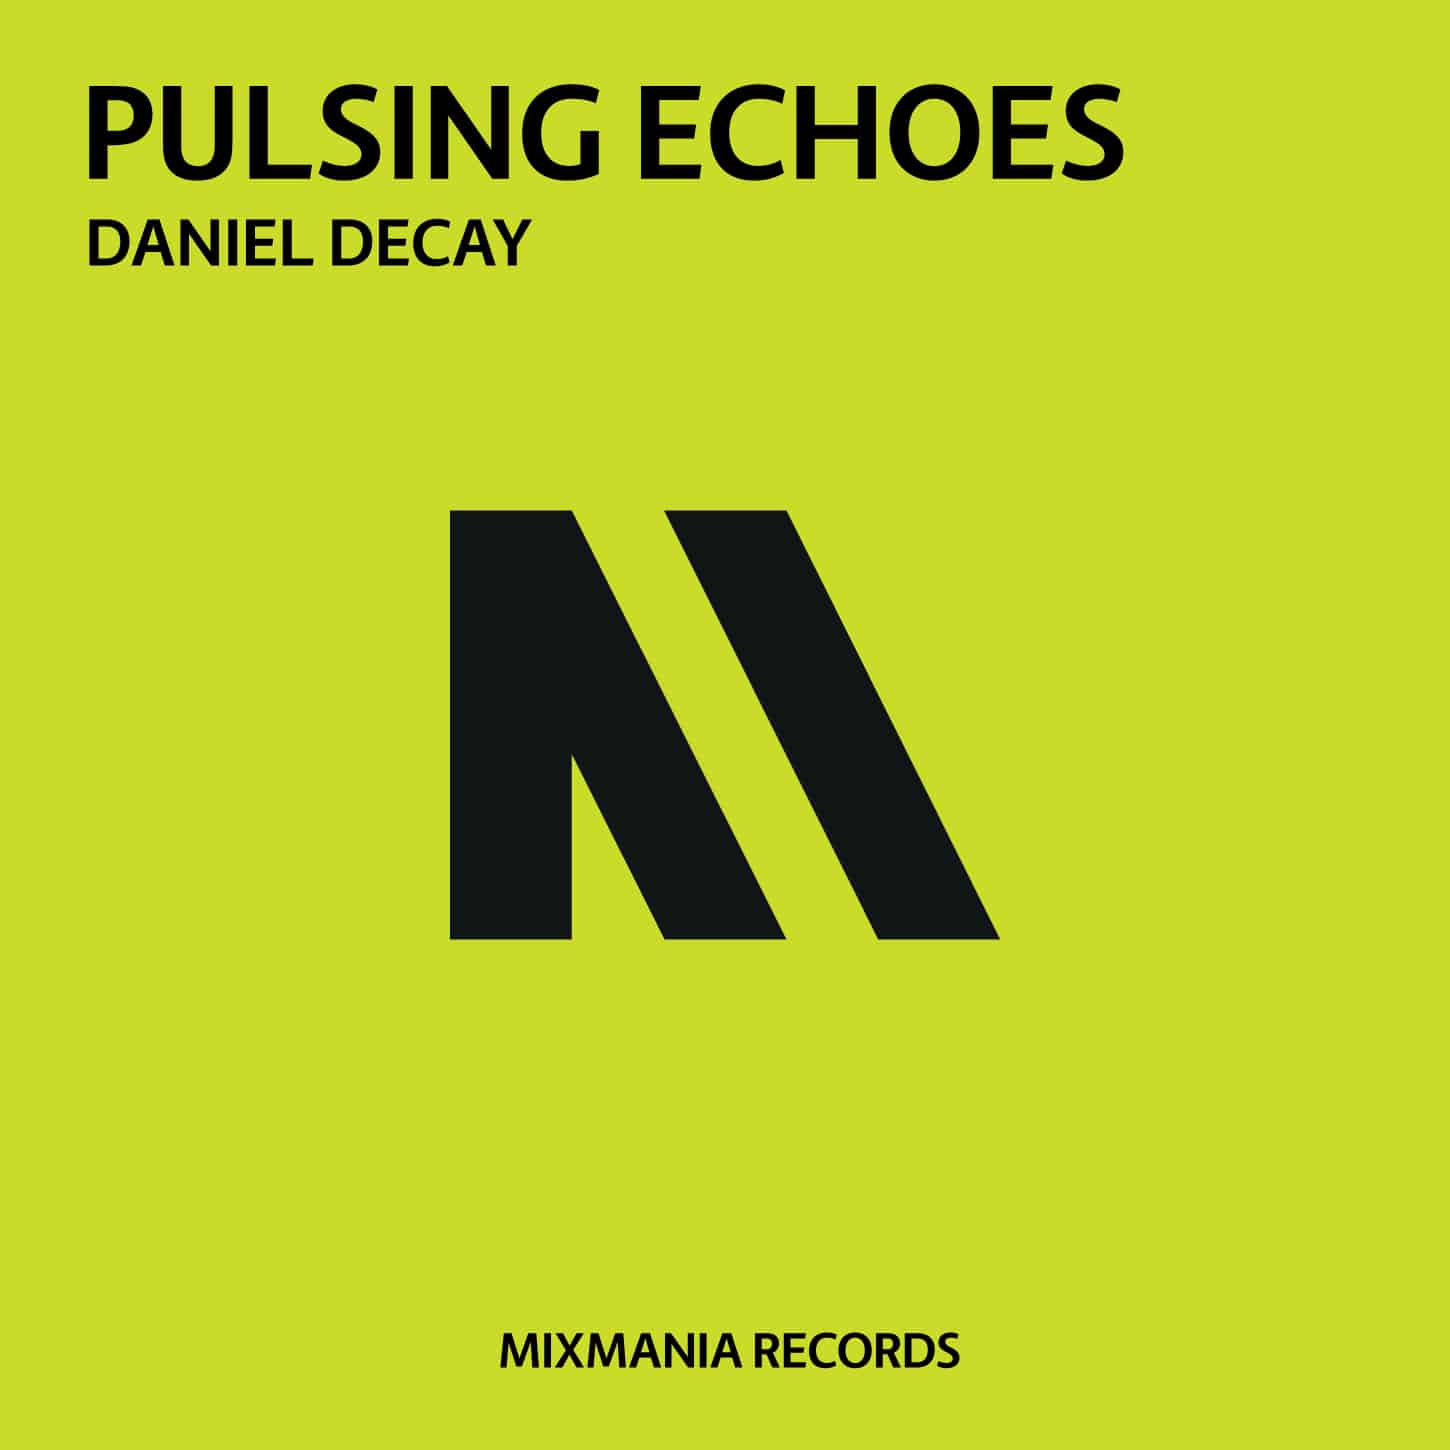 Pulsing Echoes By Daniel Decay